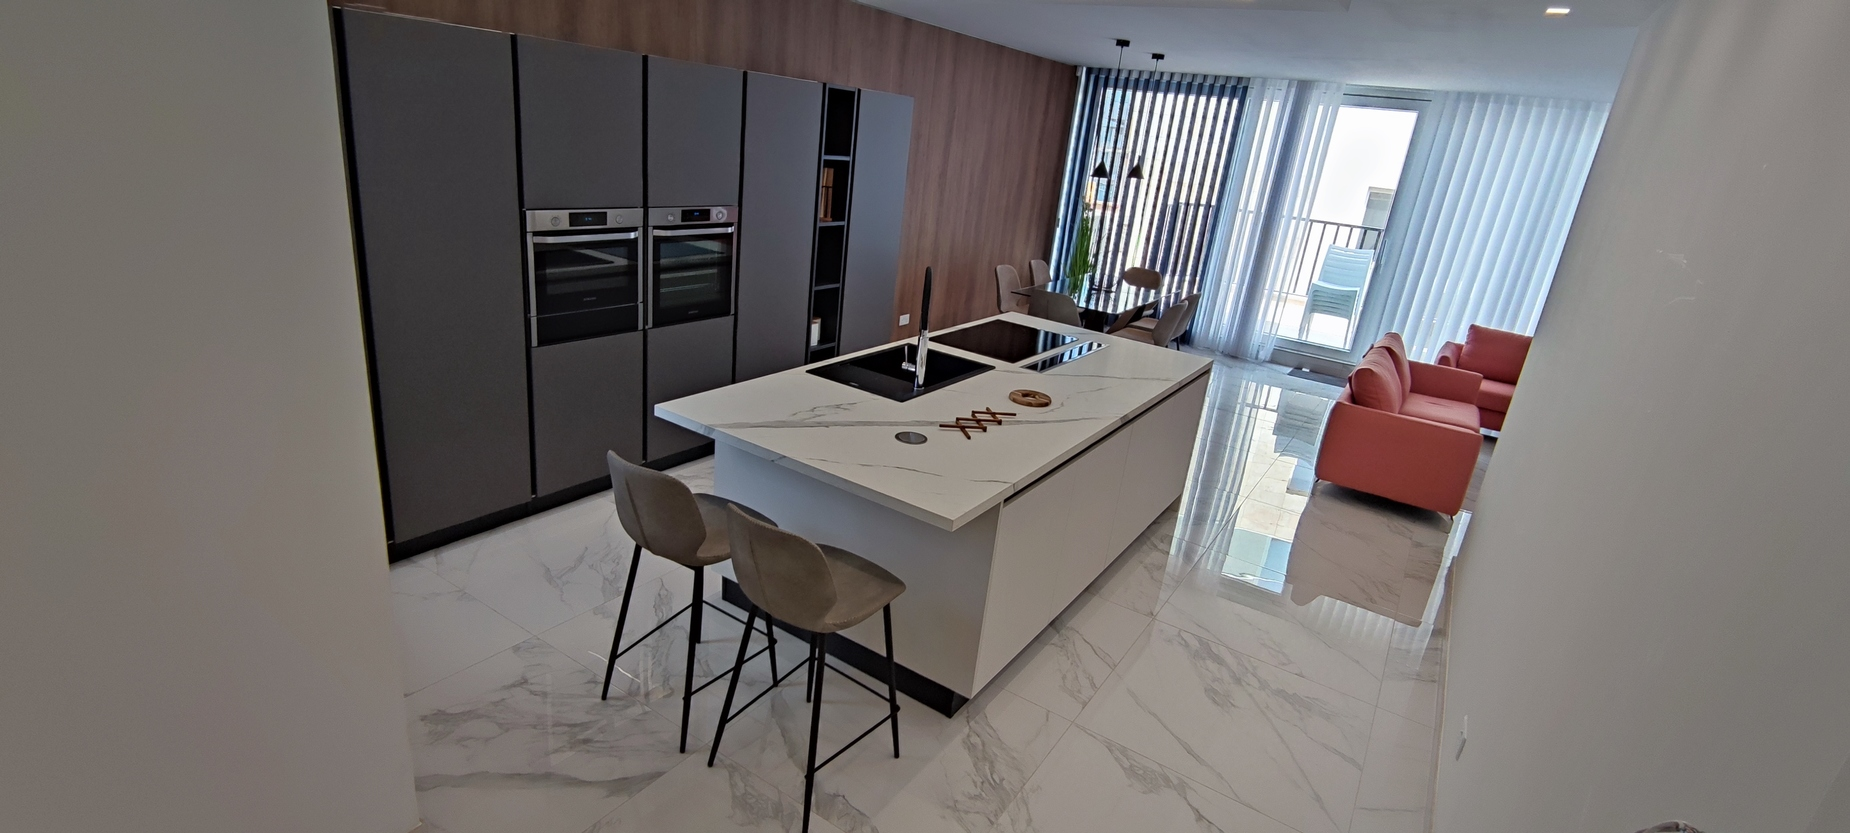 4 bed Penthouse For Rent in Sliema, Sliema - thumb 9